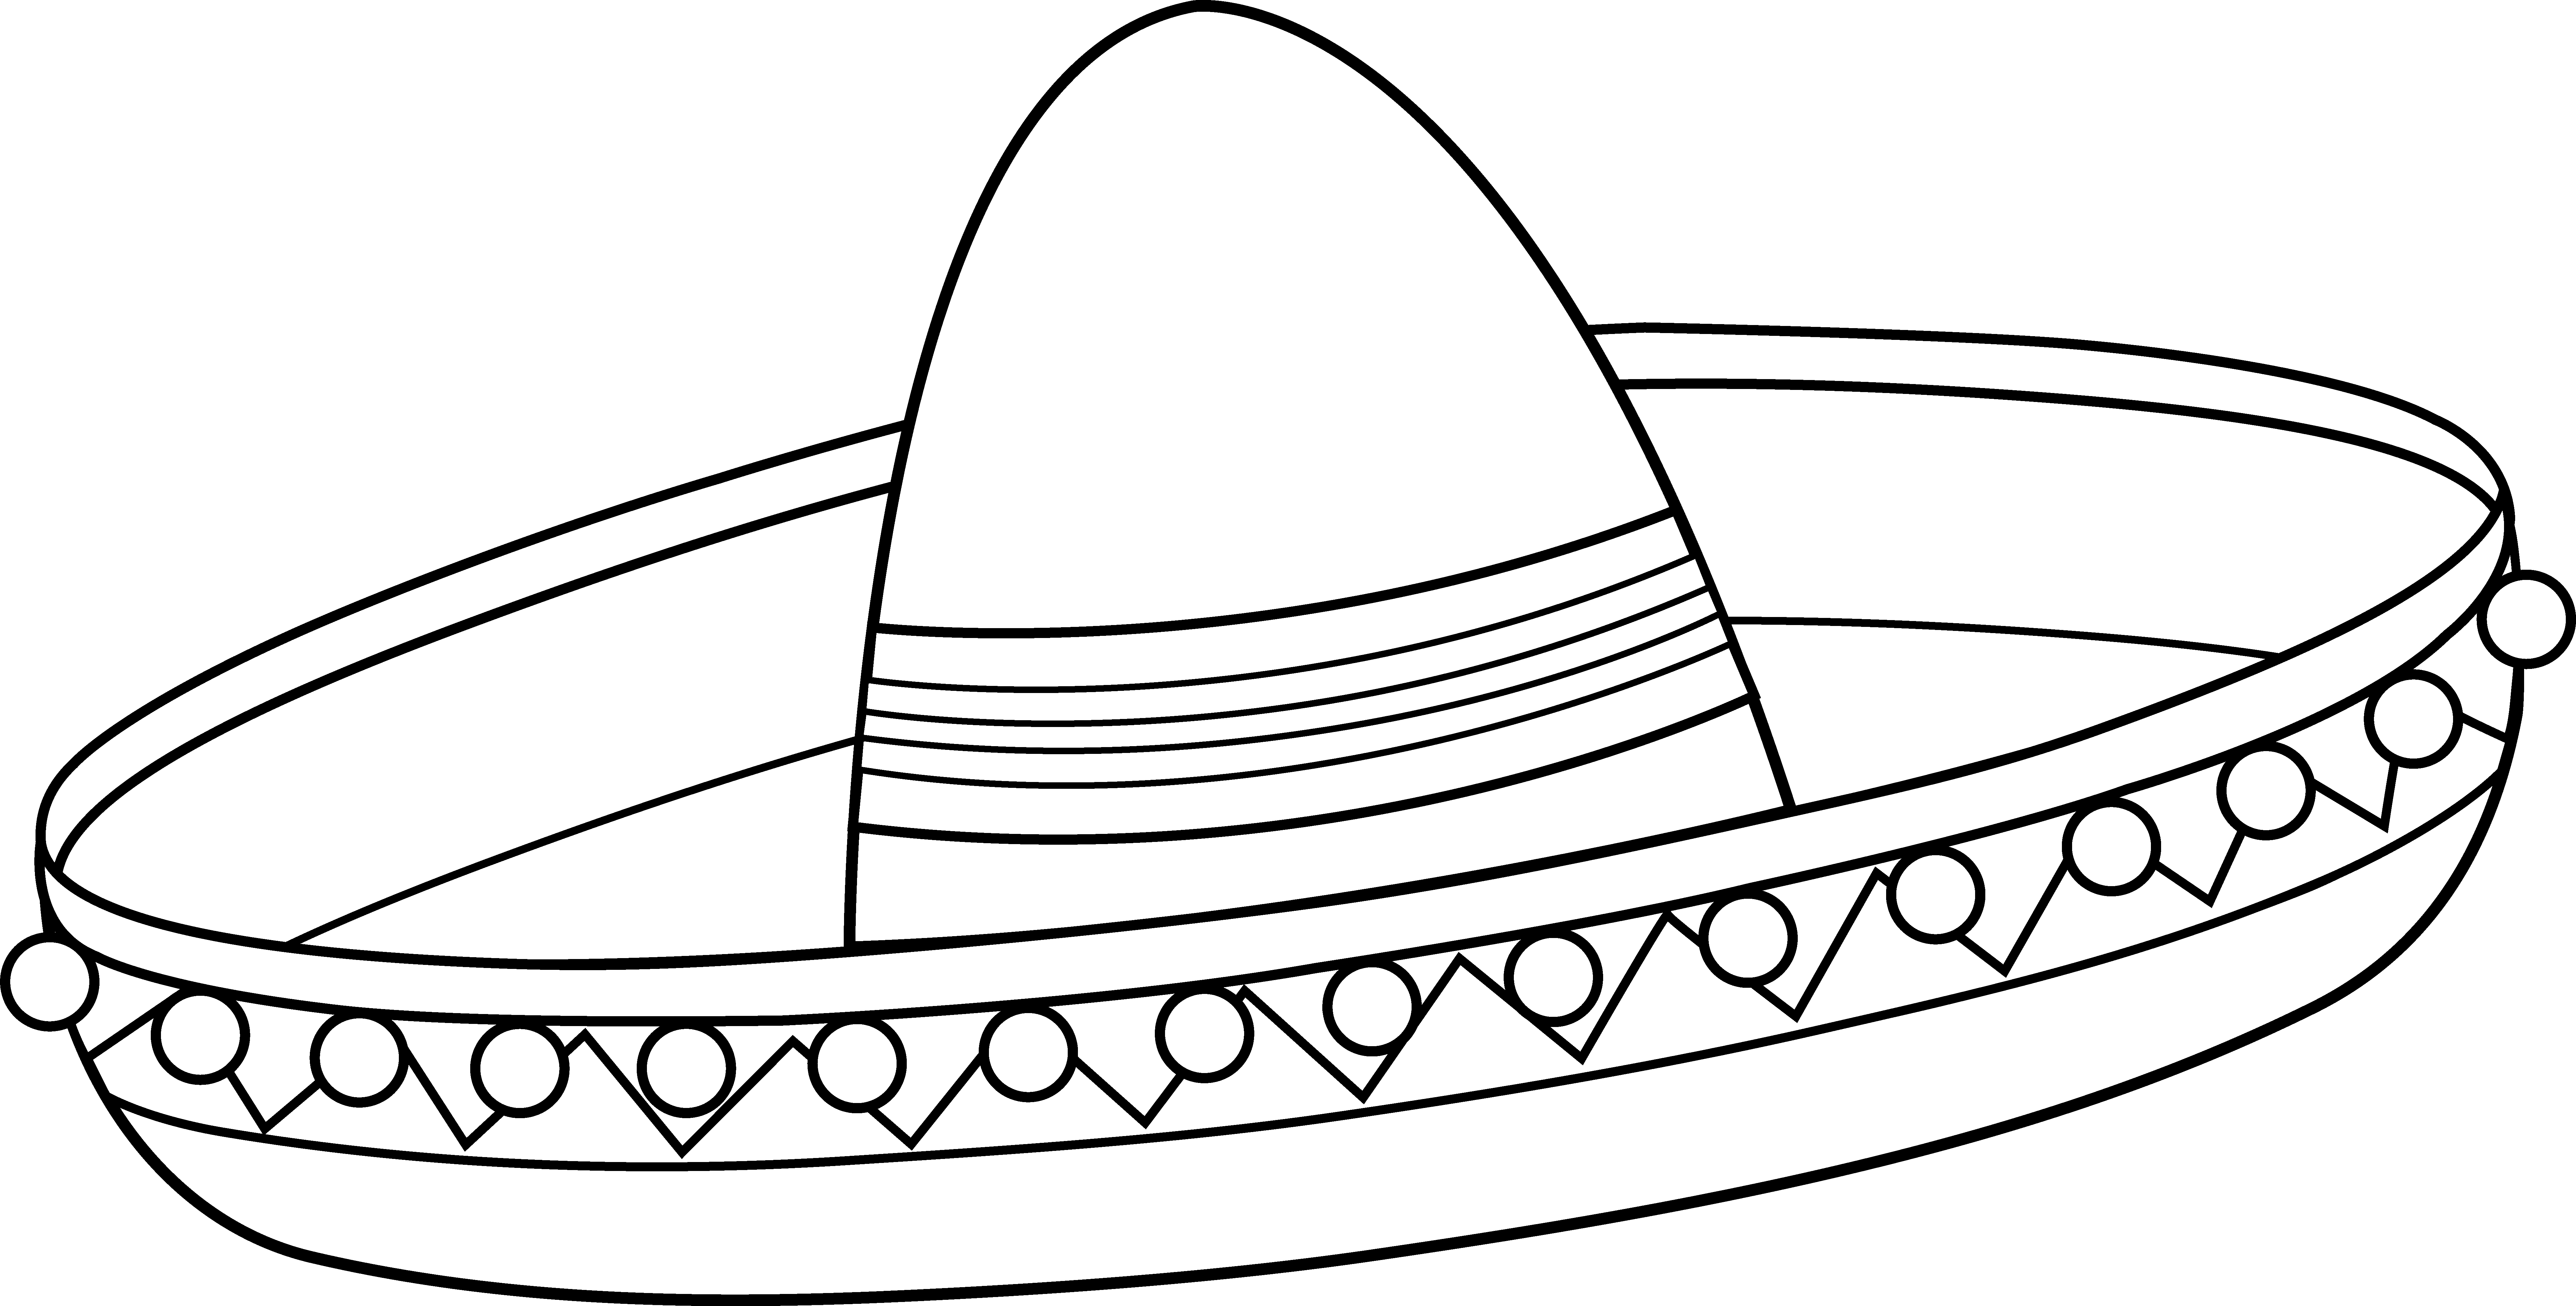 Sombrero clipart draw. Drawing at getdrawings com